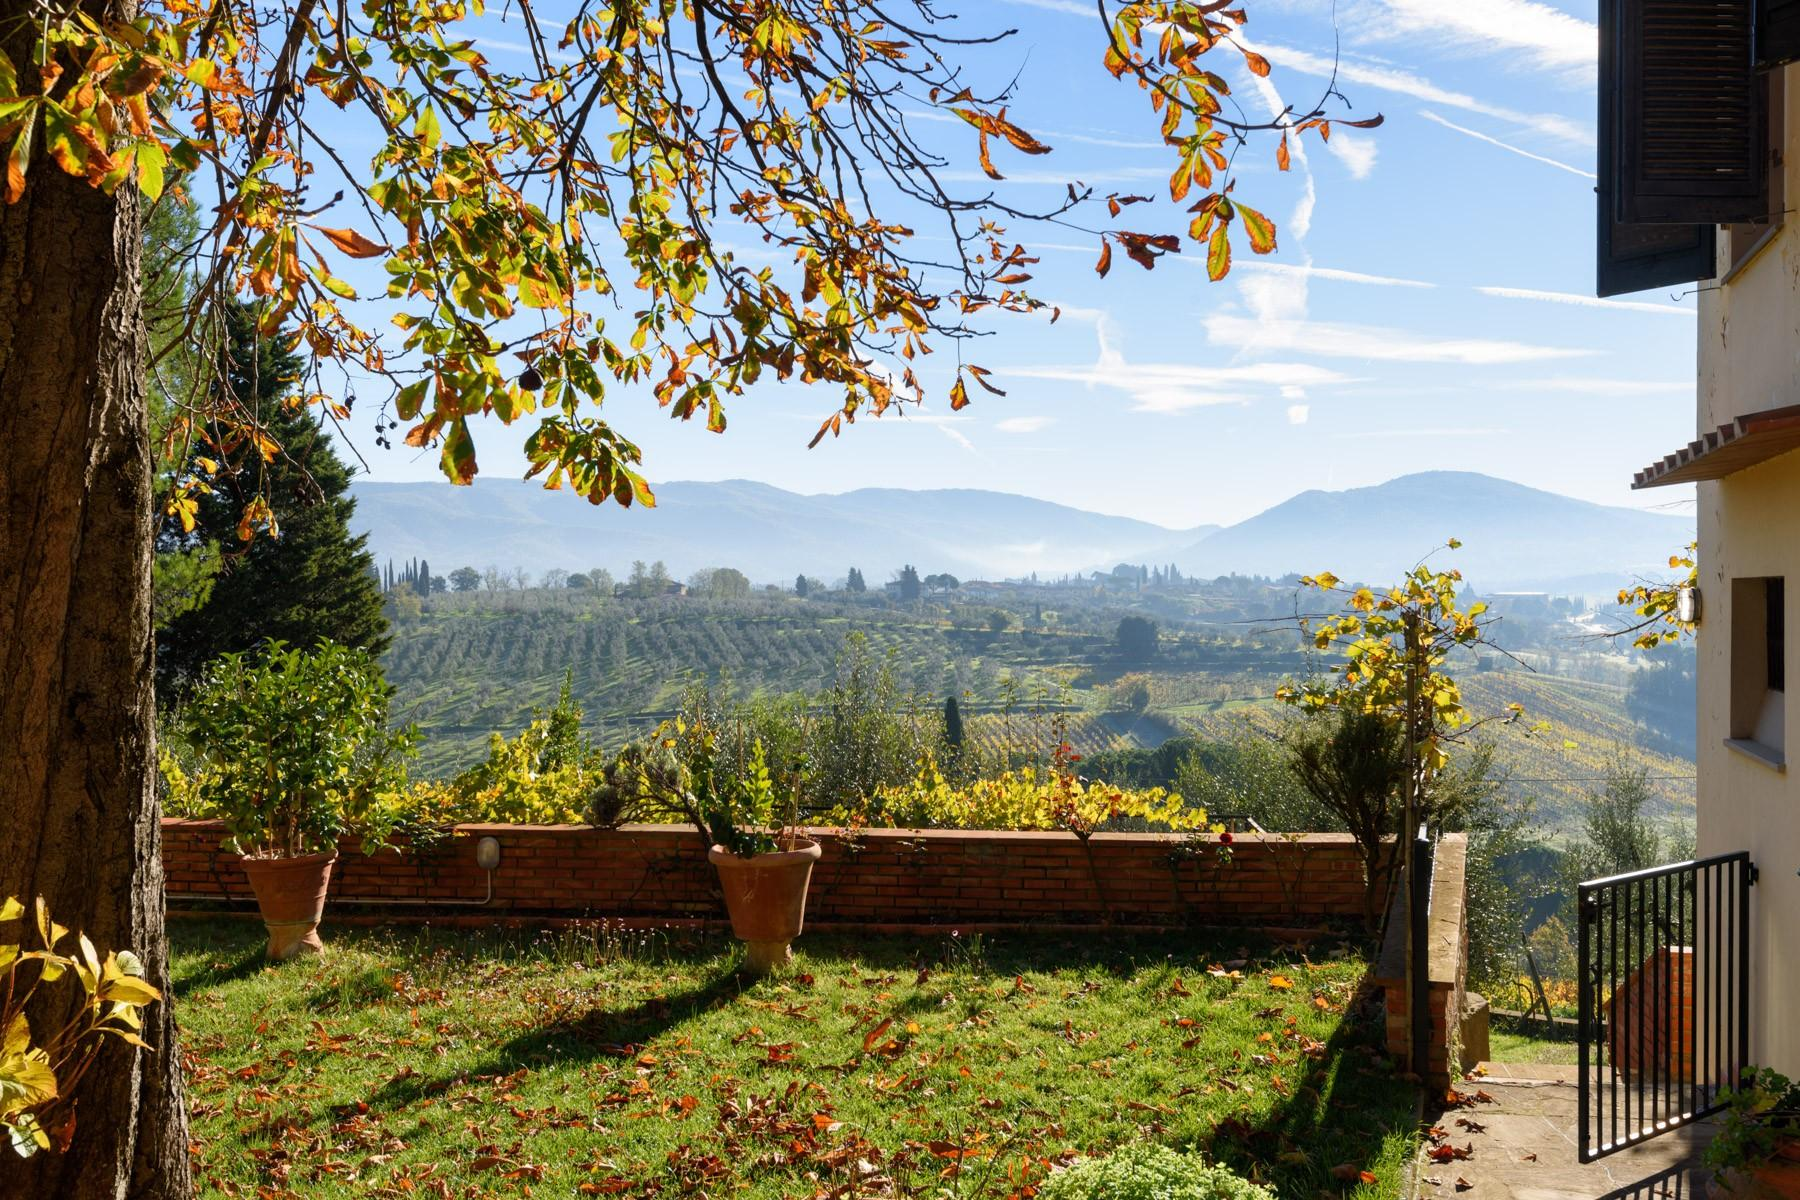 Marvelous villa in the chianti countryside - 3